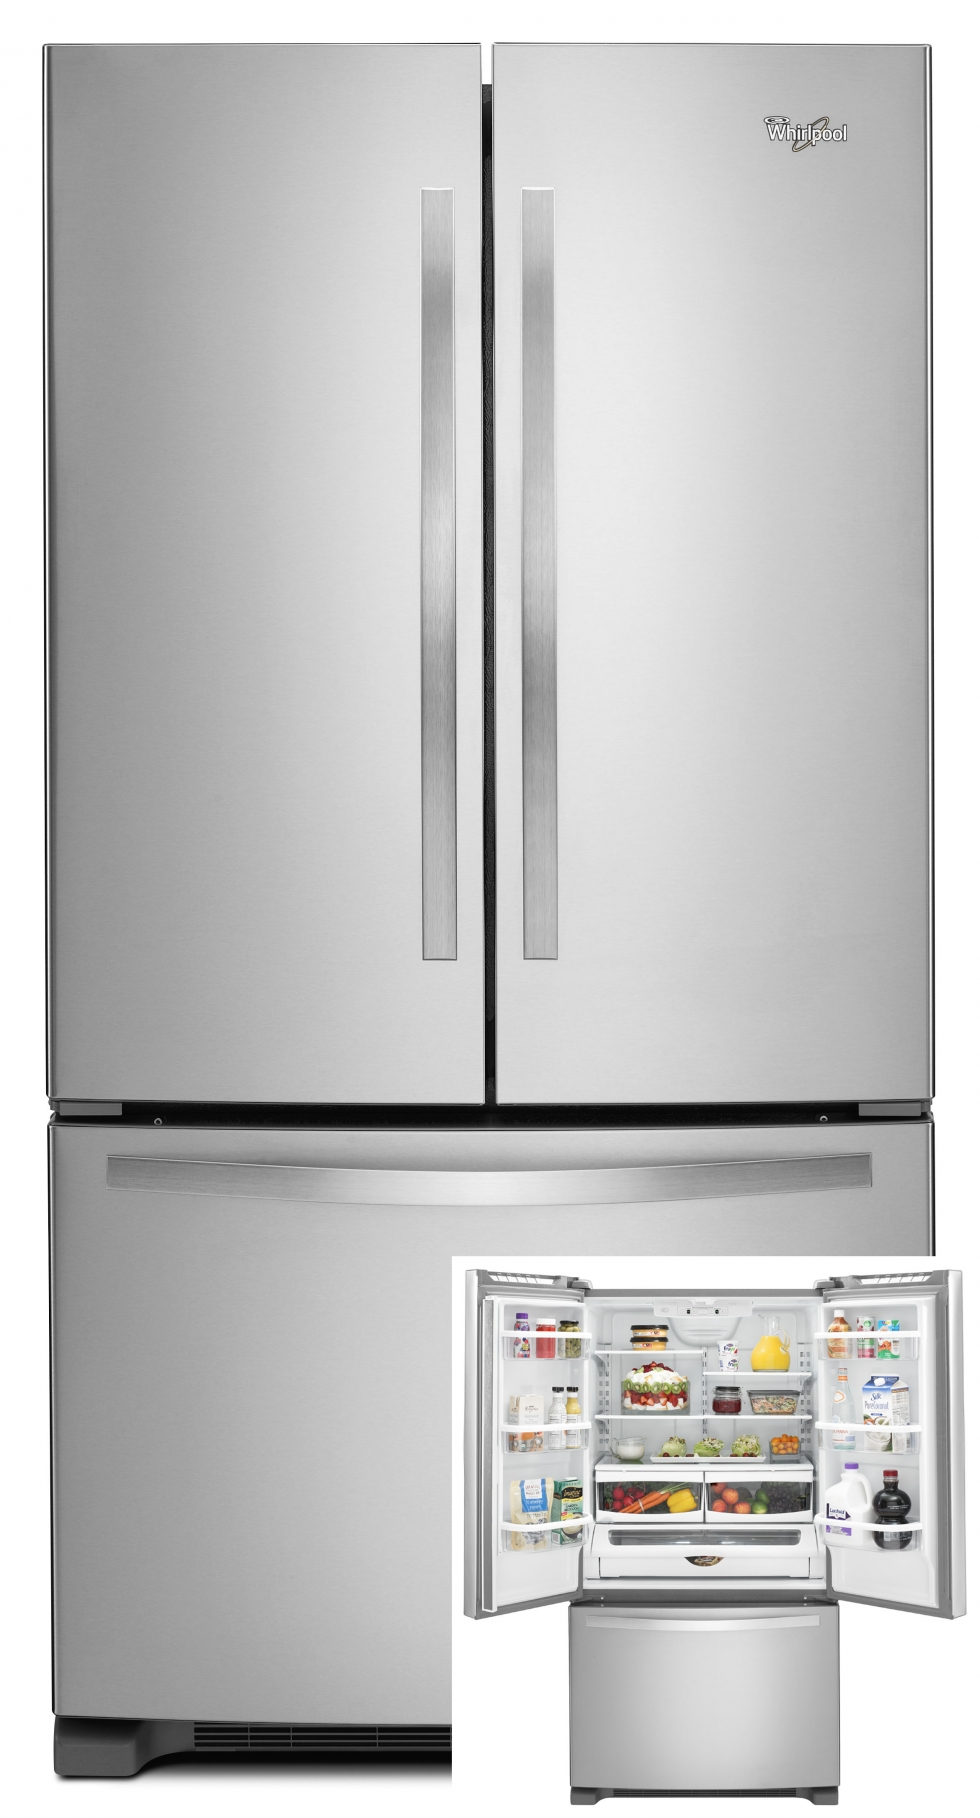 Whirlpool French Door Refrigerator Stainless Steel